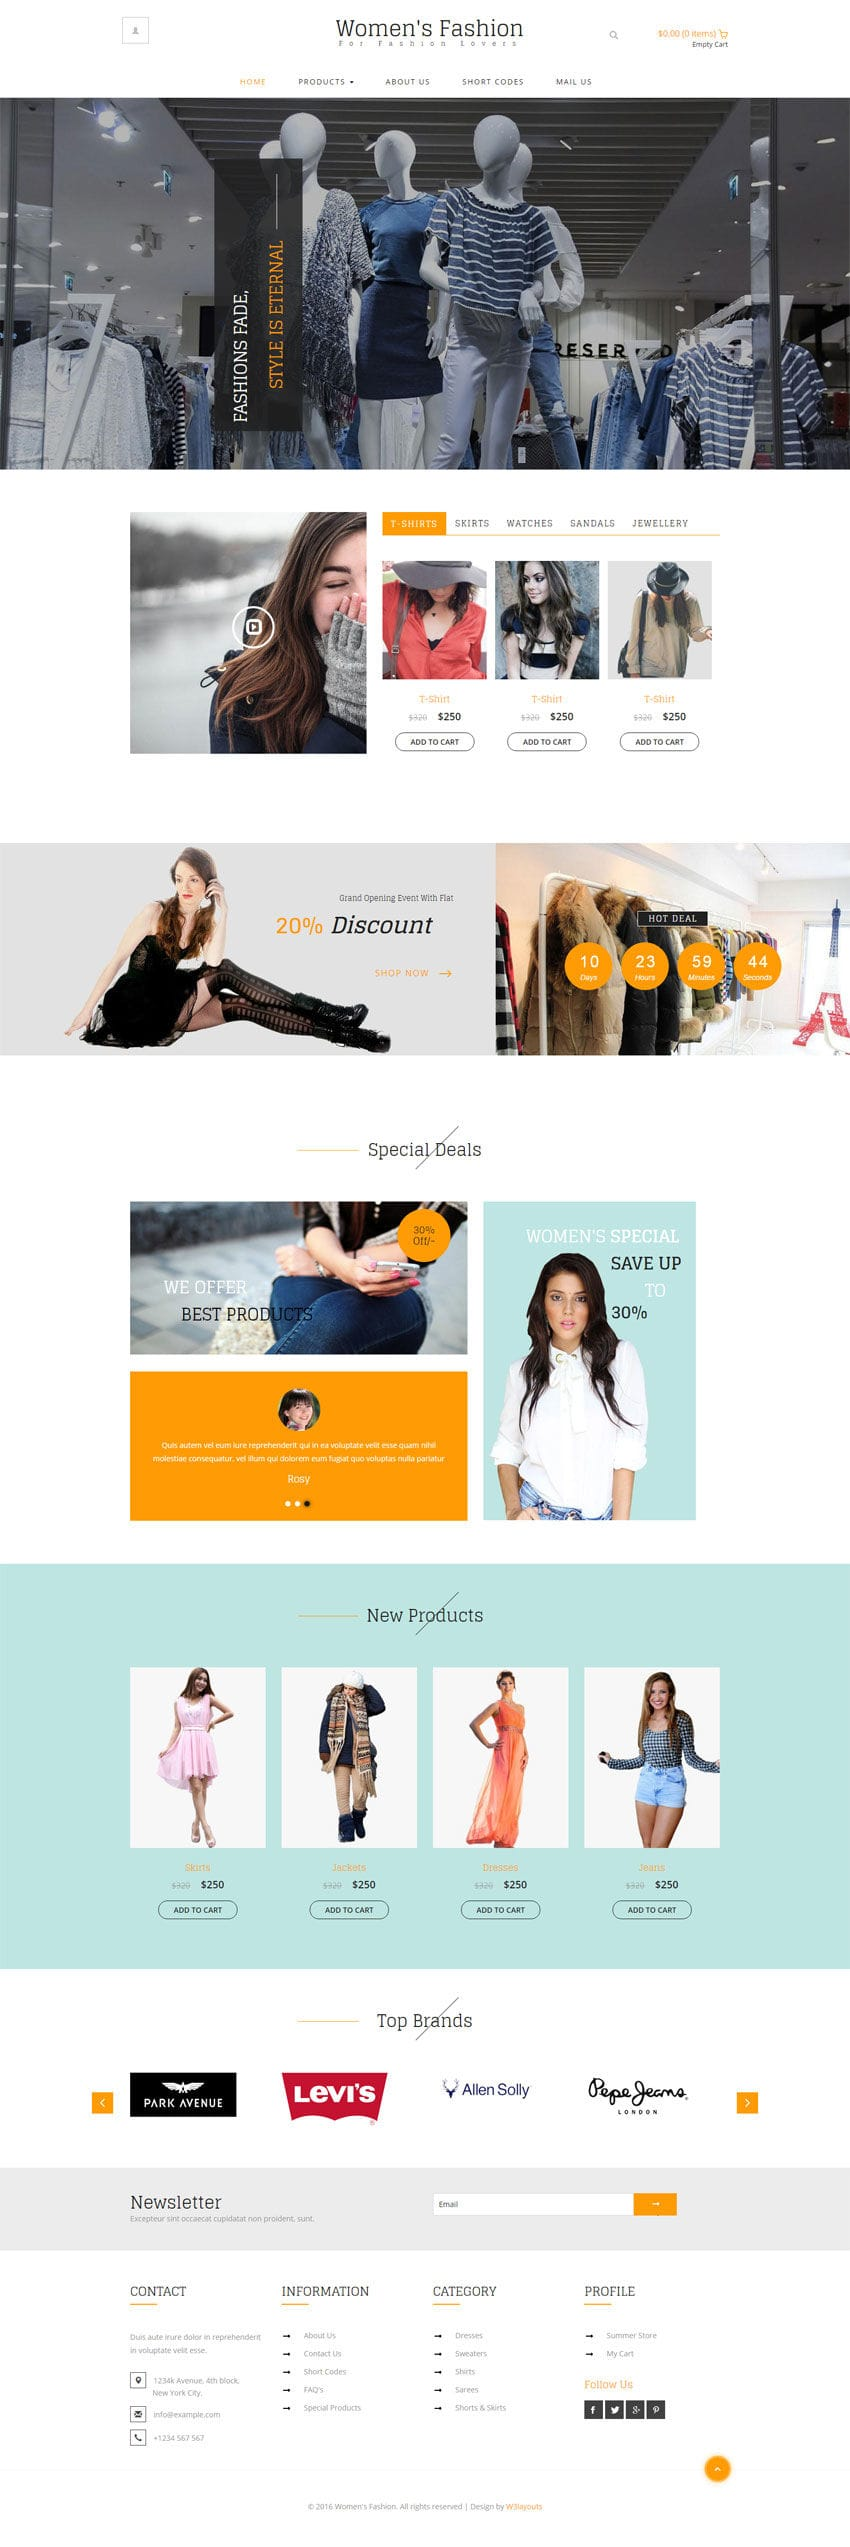 Womens Fashion A Ecommerce Category Flat Bootstrap Responsive Web